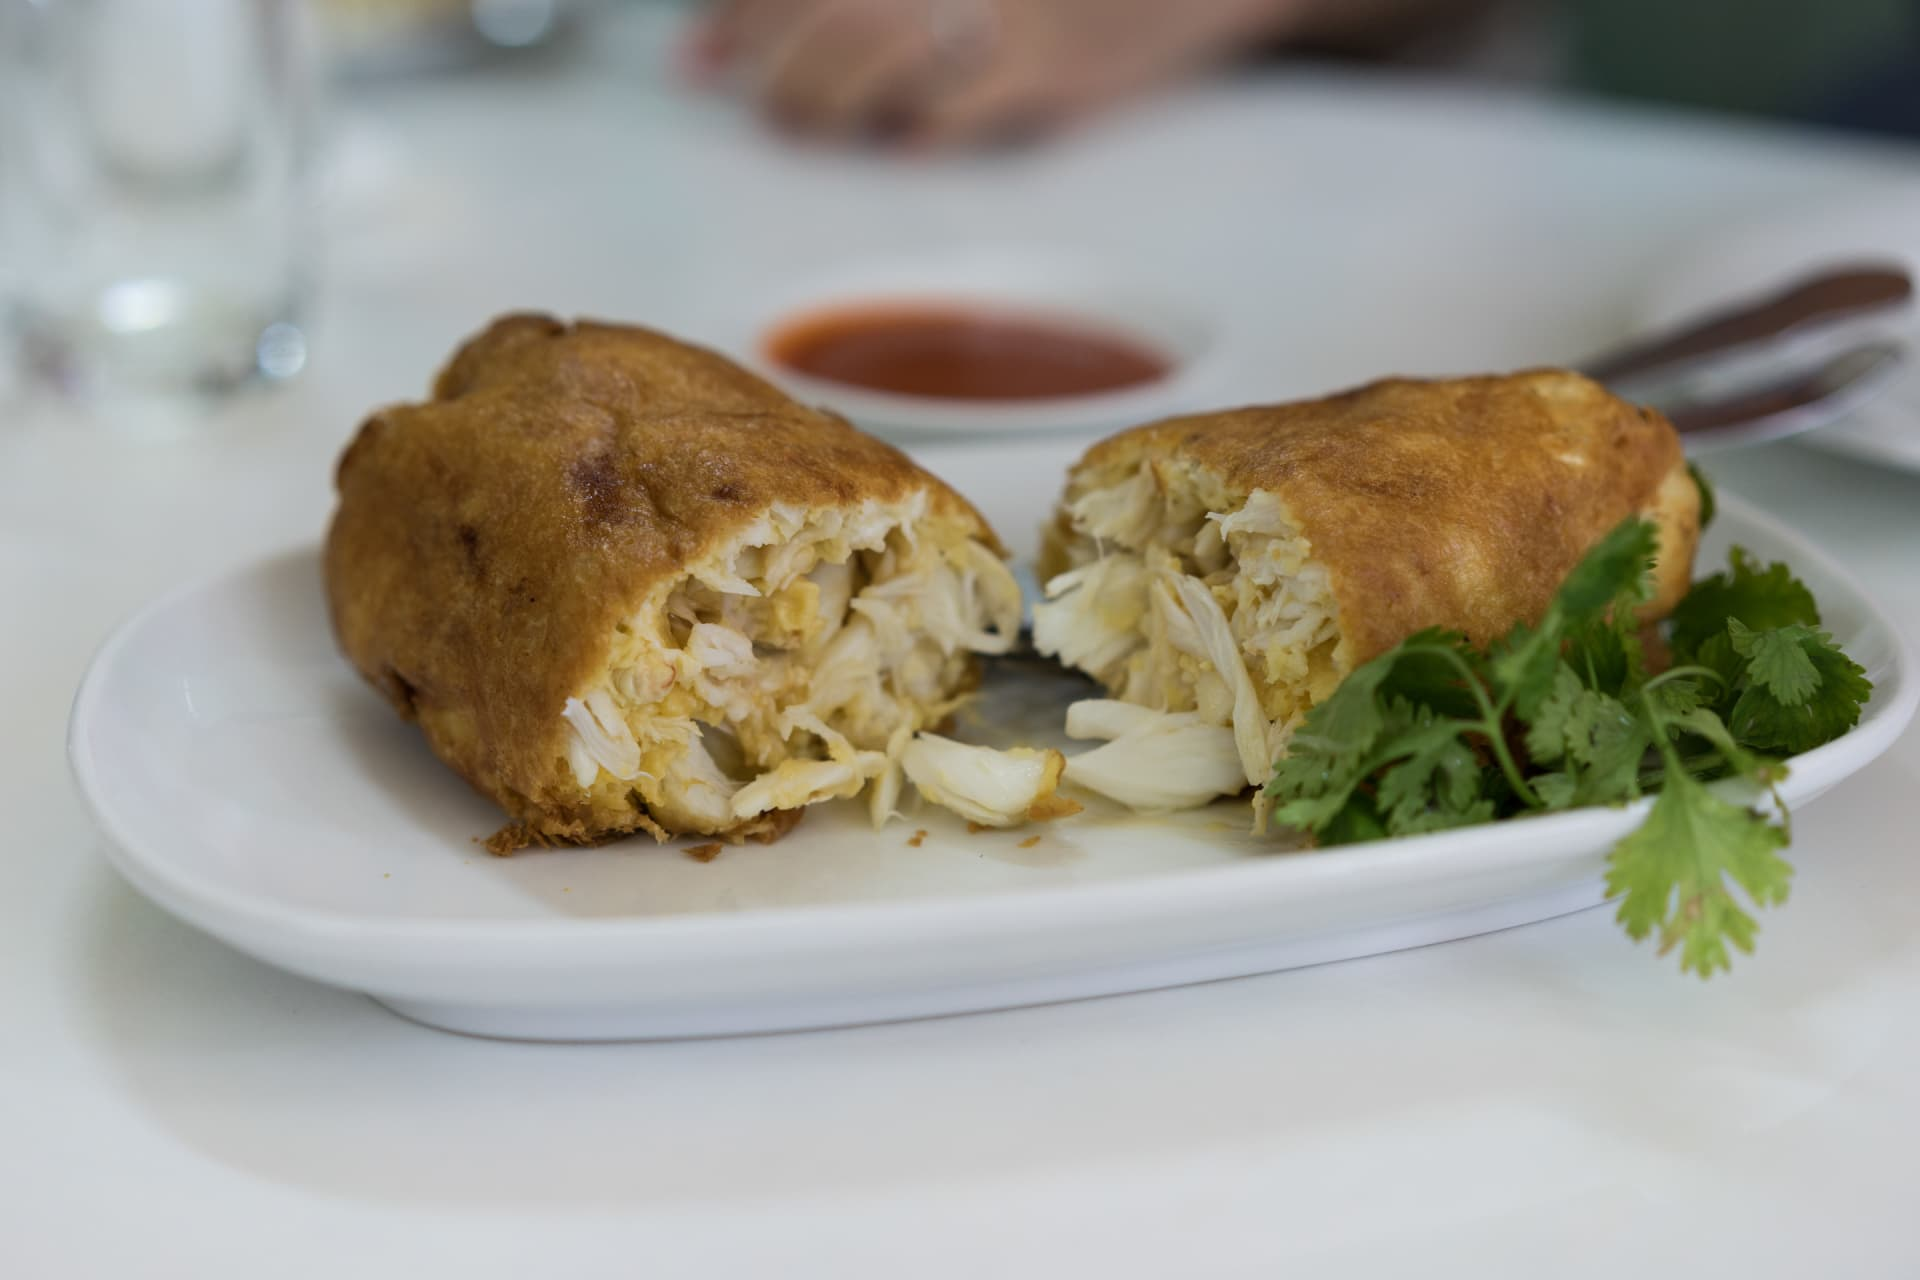 The 1000 Thai Baht deep-fried crab omelet